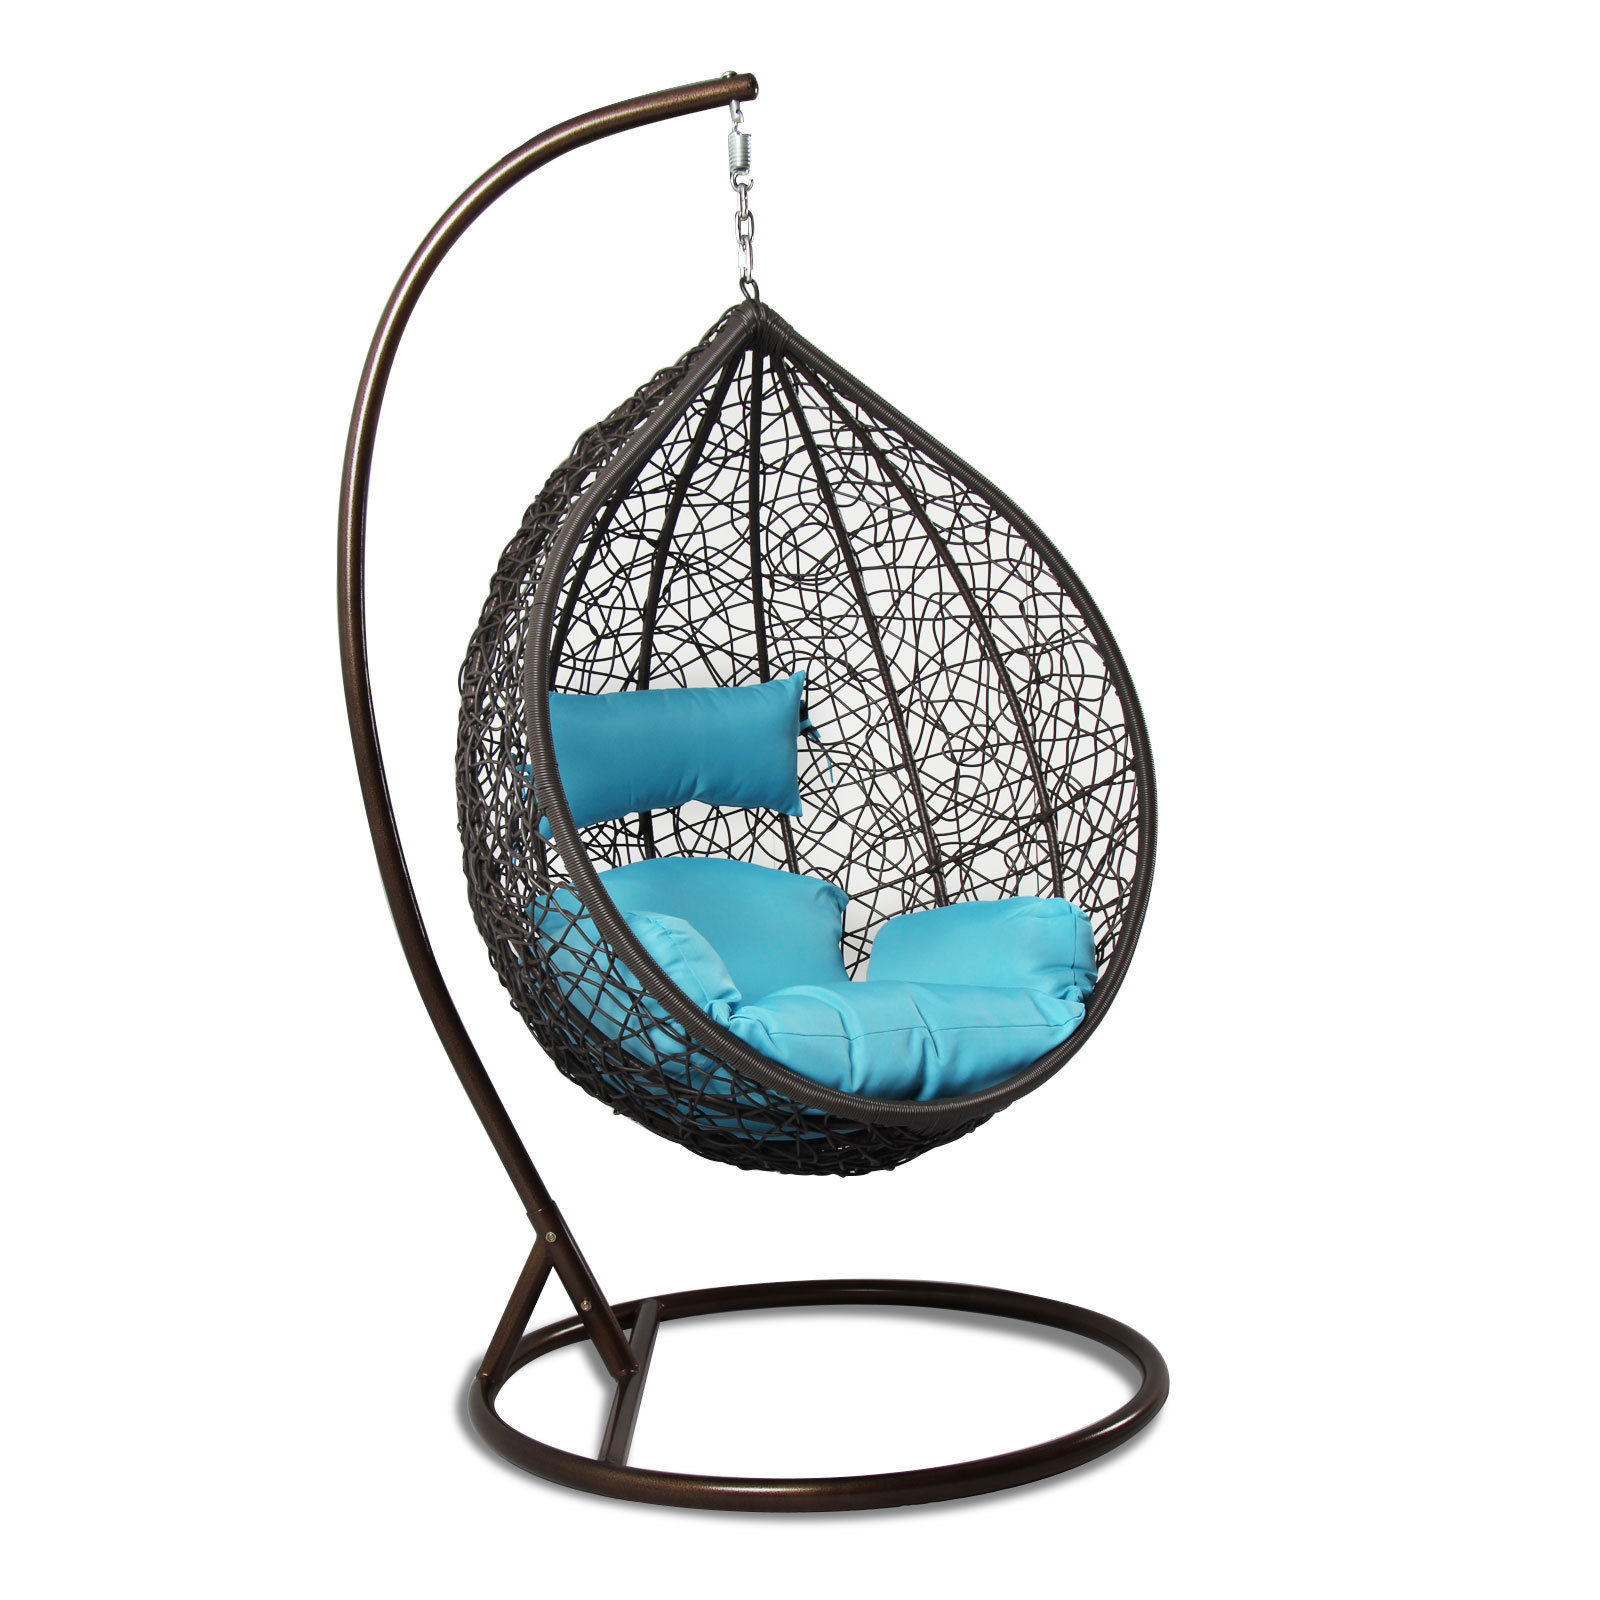 Outdoor Strong Rattan Hanging Proch Wicker Swing Chair Free Cover Blue Cushion